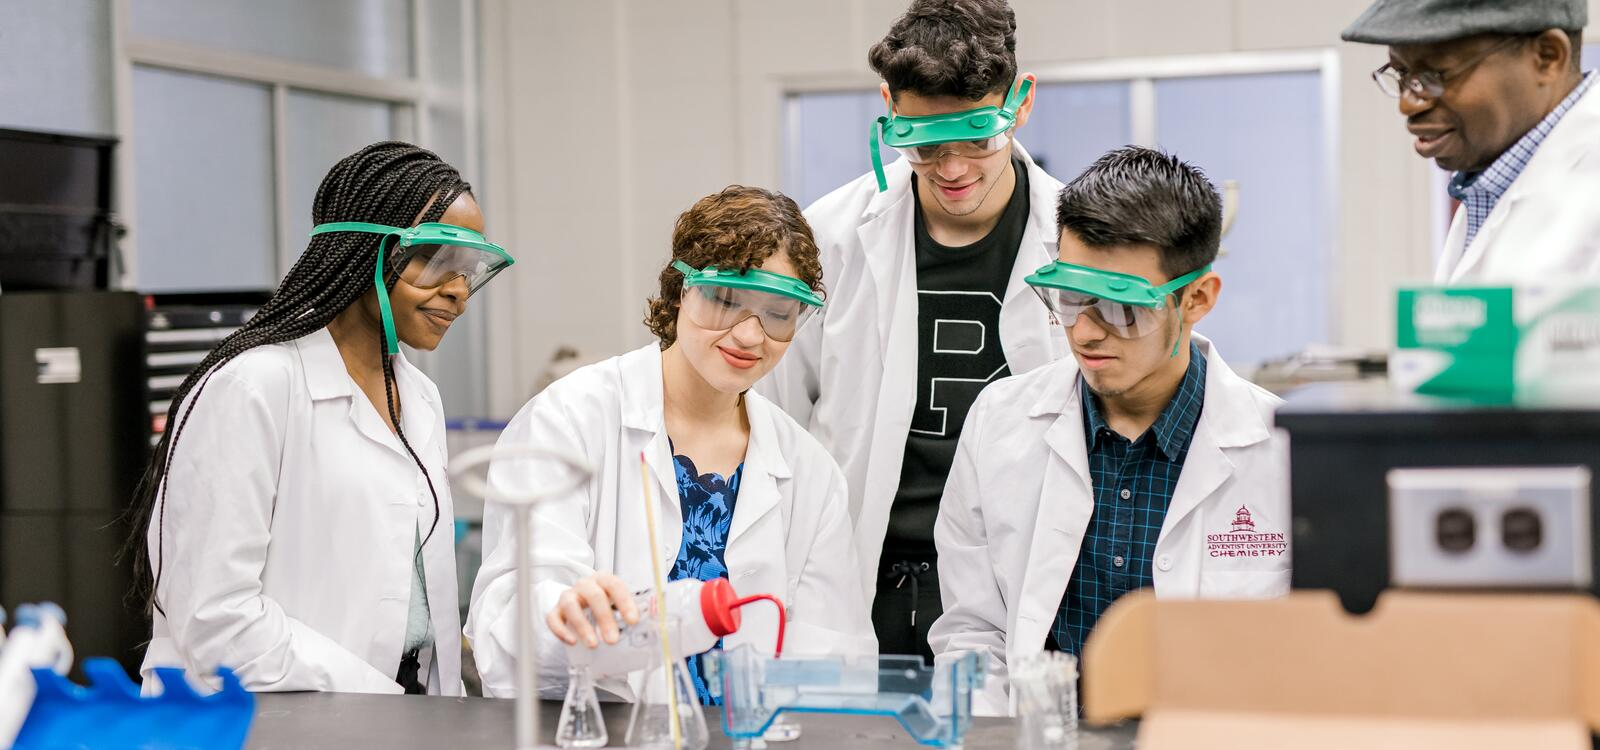 with help from their professor, three students, dressed in white lab coats and goggles, sit around and another student conduct an experiment.